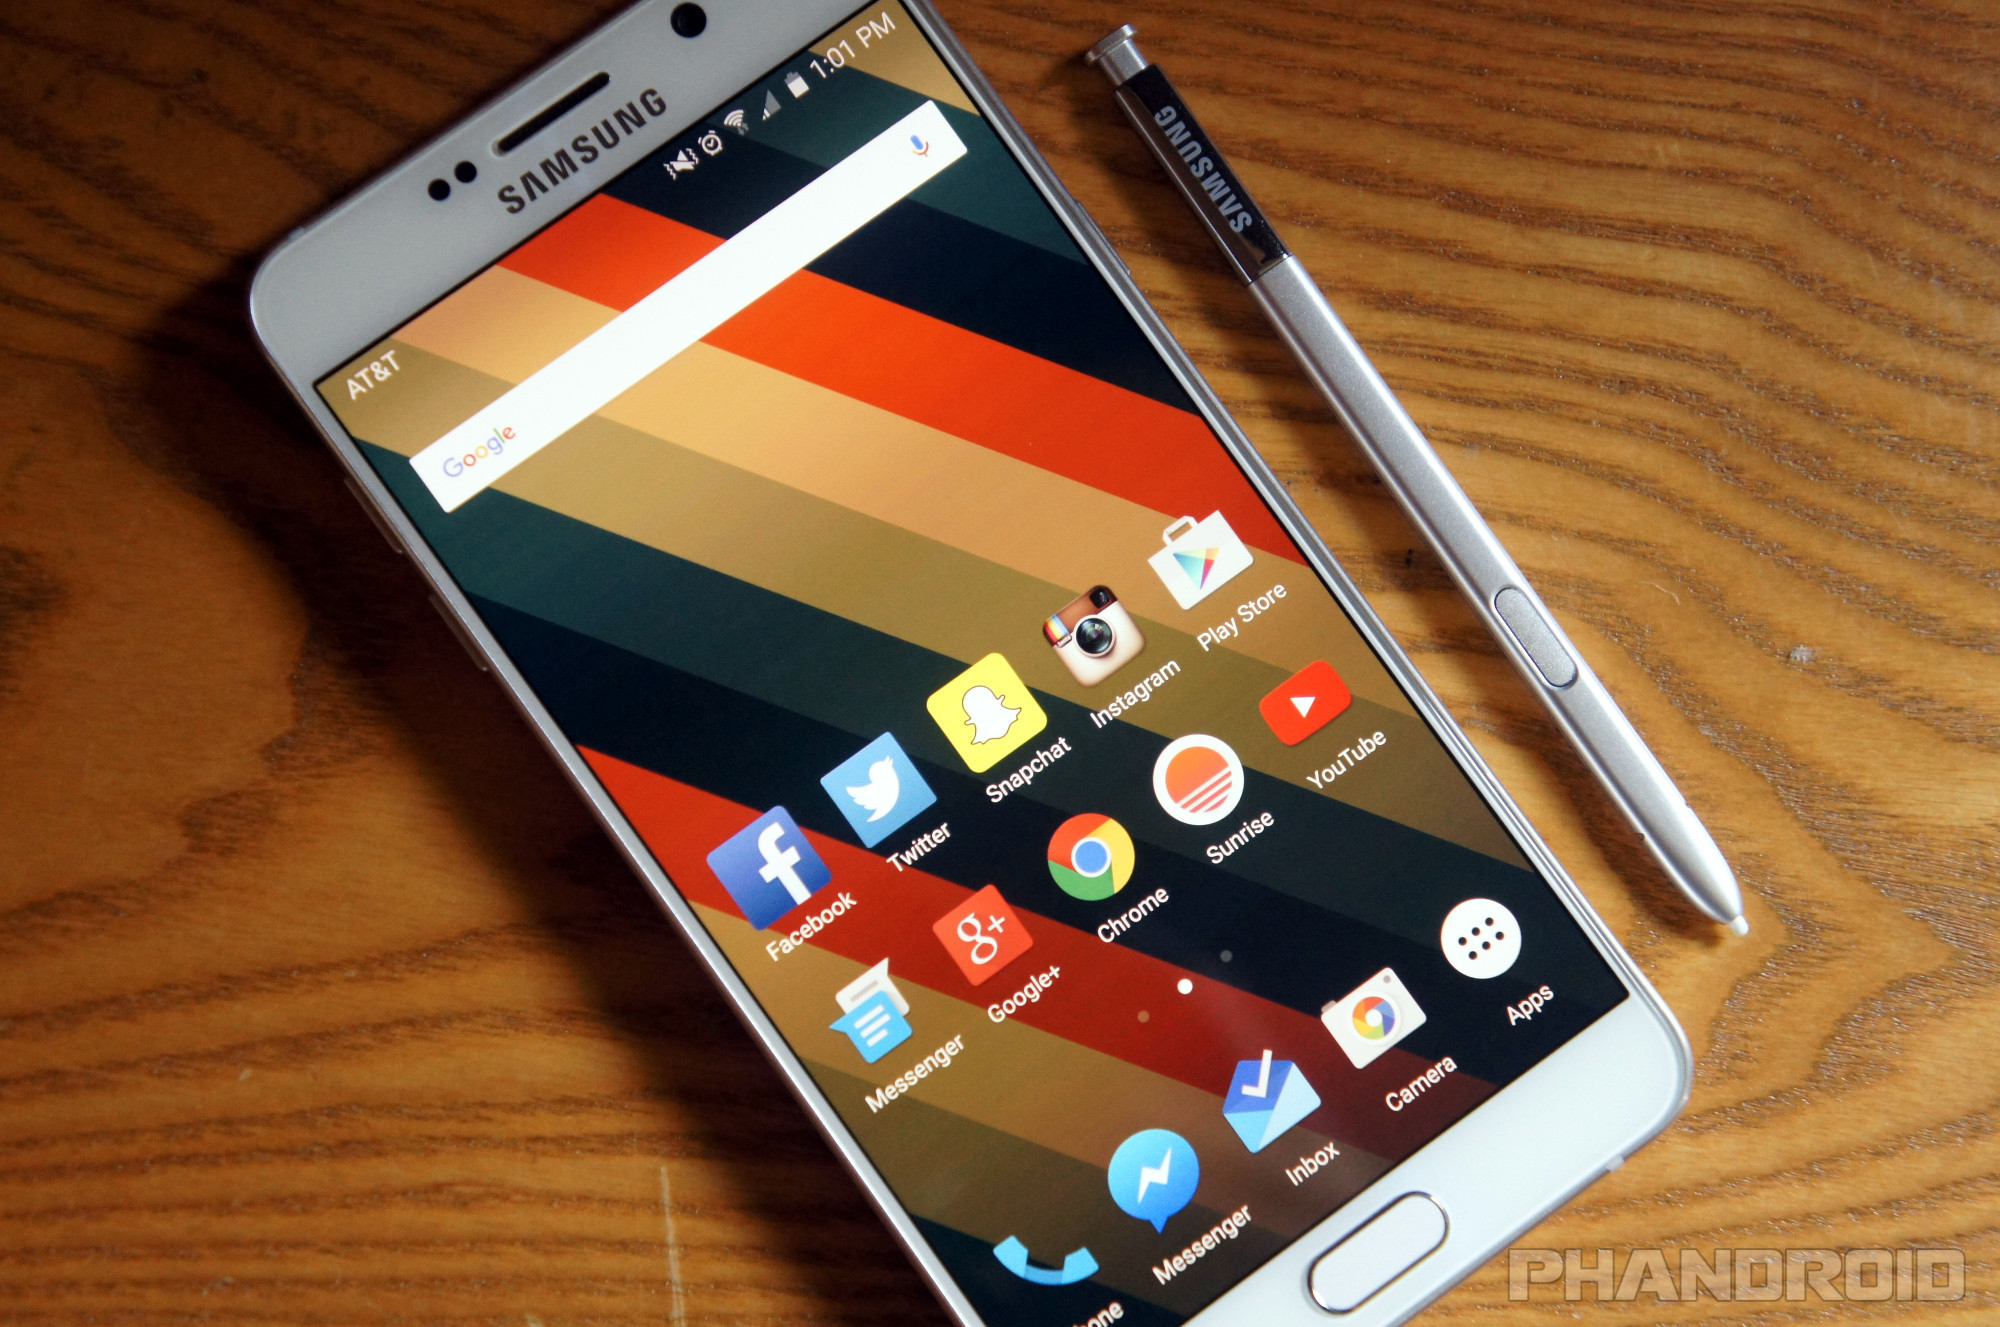 Galaxy Note 7 Alternatives: Best Android Phones with a Stylus